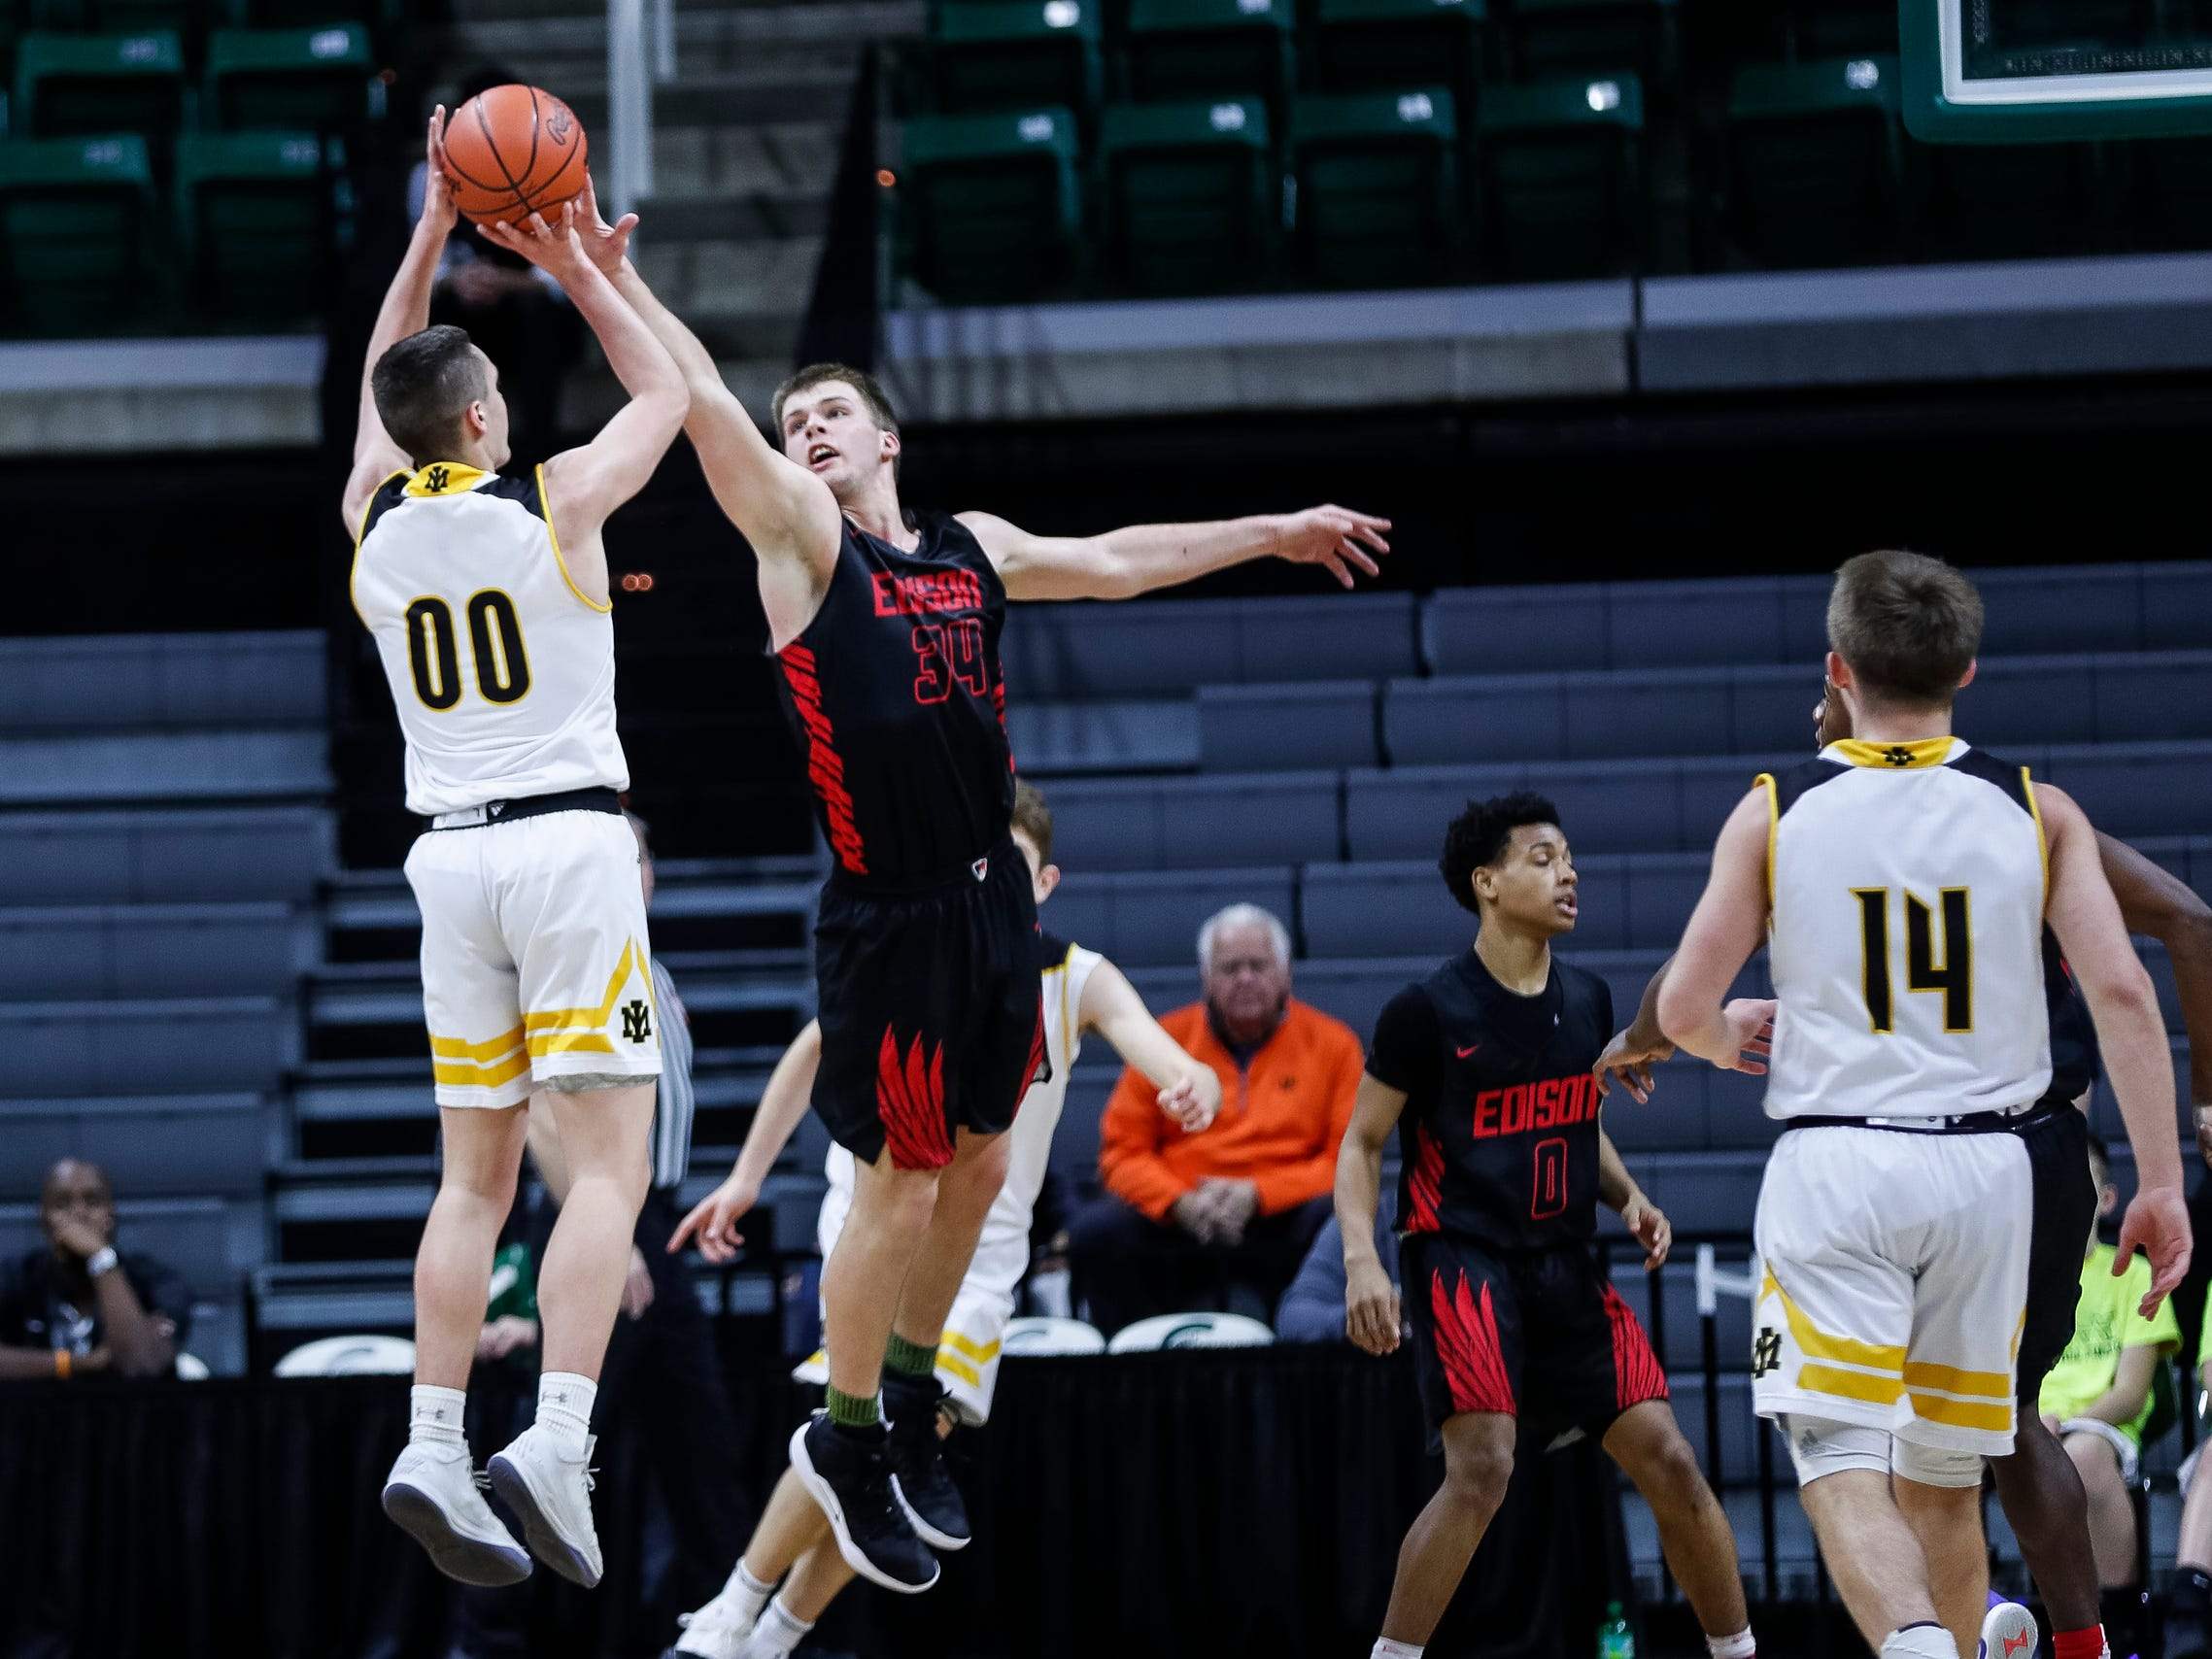 Iron Mountain's Foster Wonders (00) shoots against Detroit Edison's Bryce George (34) during the first half of MHSAA Division 3 semifinal at the Breslin Center in East Lansing, Thursday, March 14, 2019.